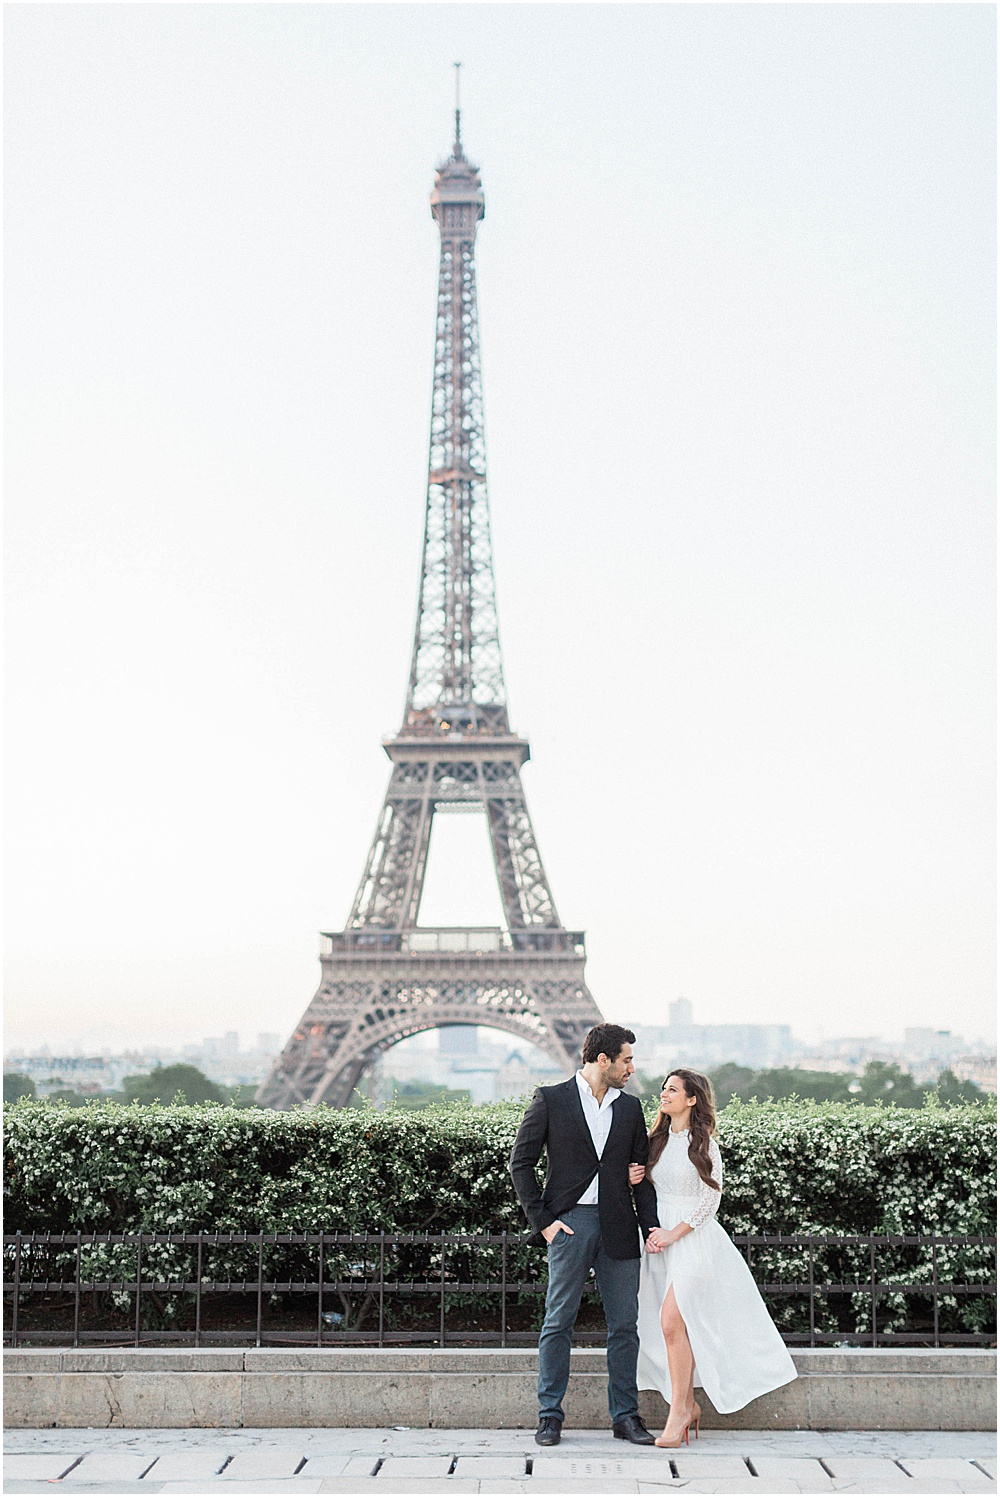 A Trocadero and Louvre Paris Engagement Session | Diane and